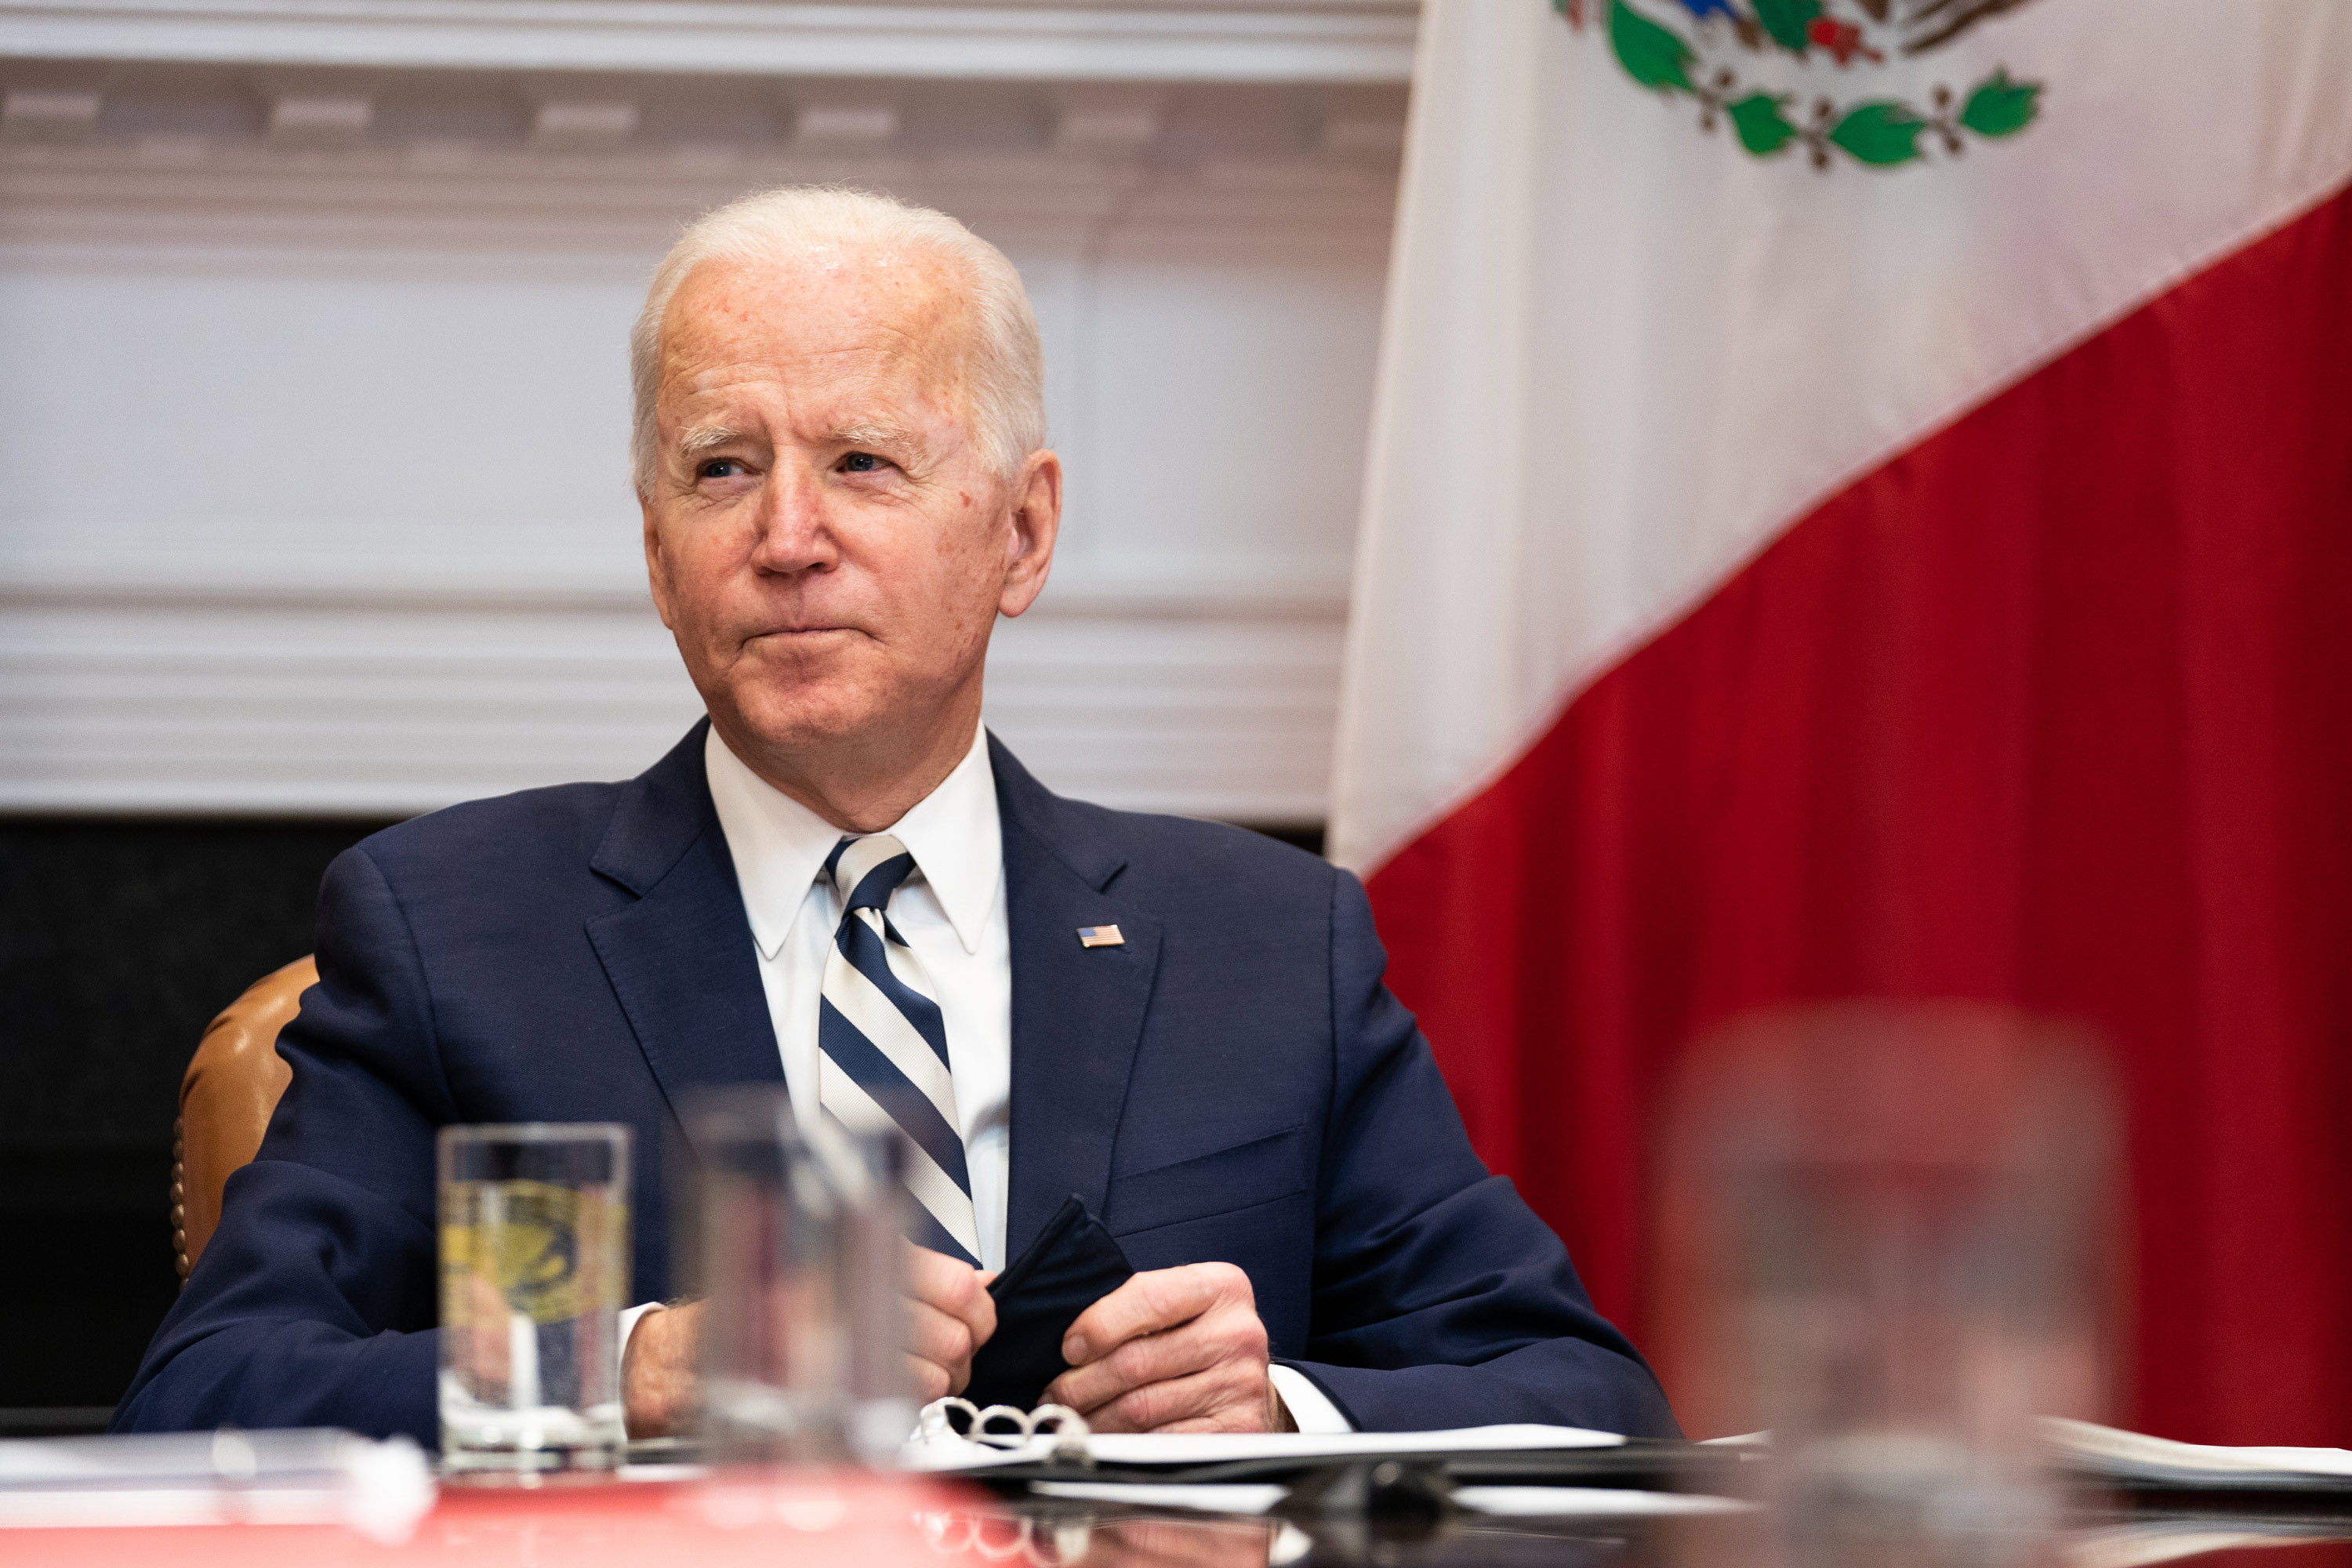 Biden now says US will have enough vaccine for every adult by the end of May